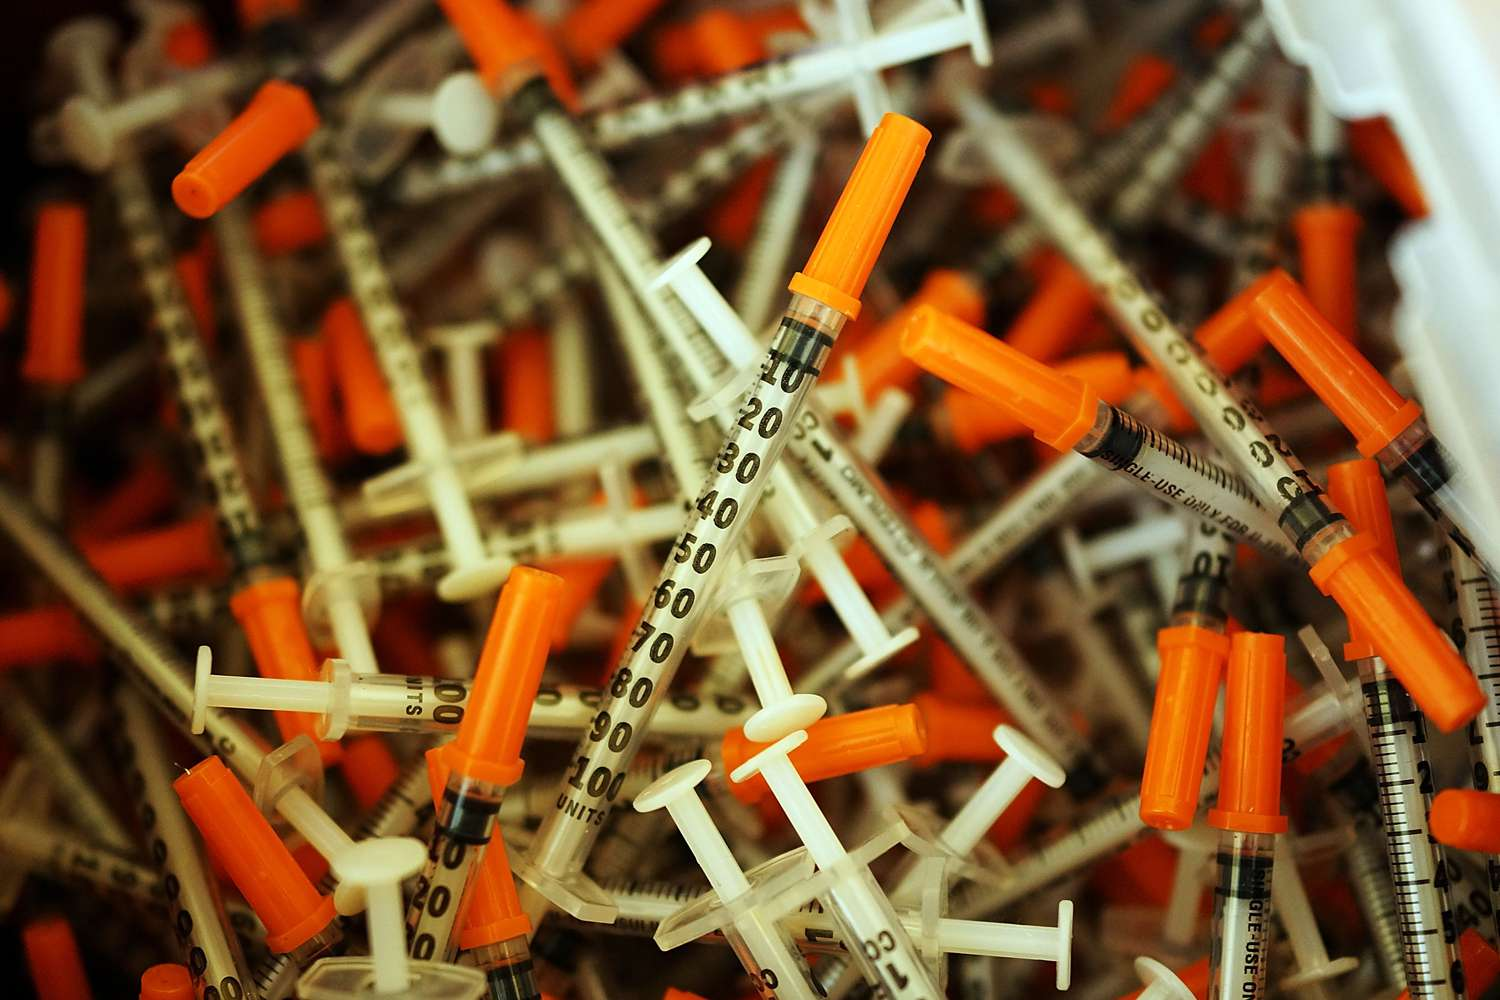 Pile of syringes